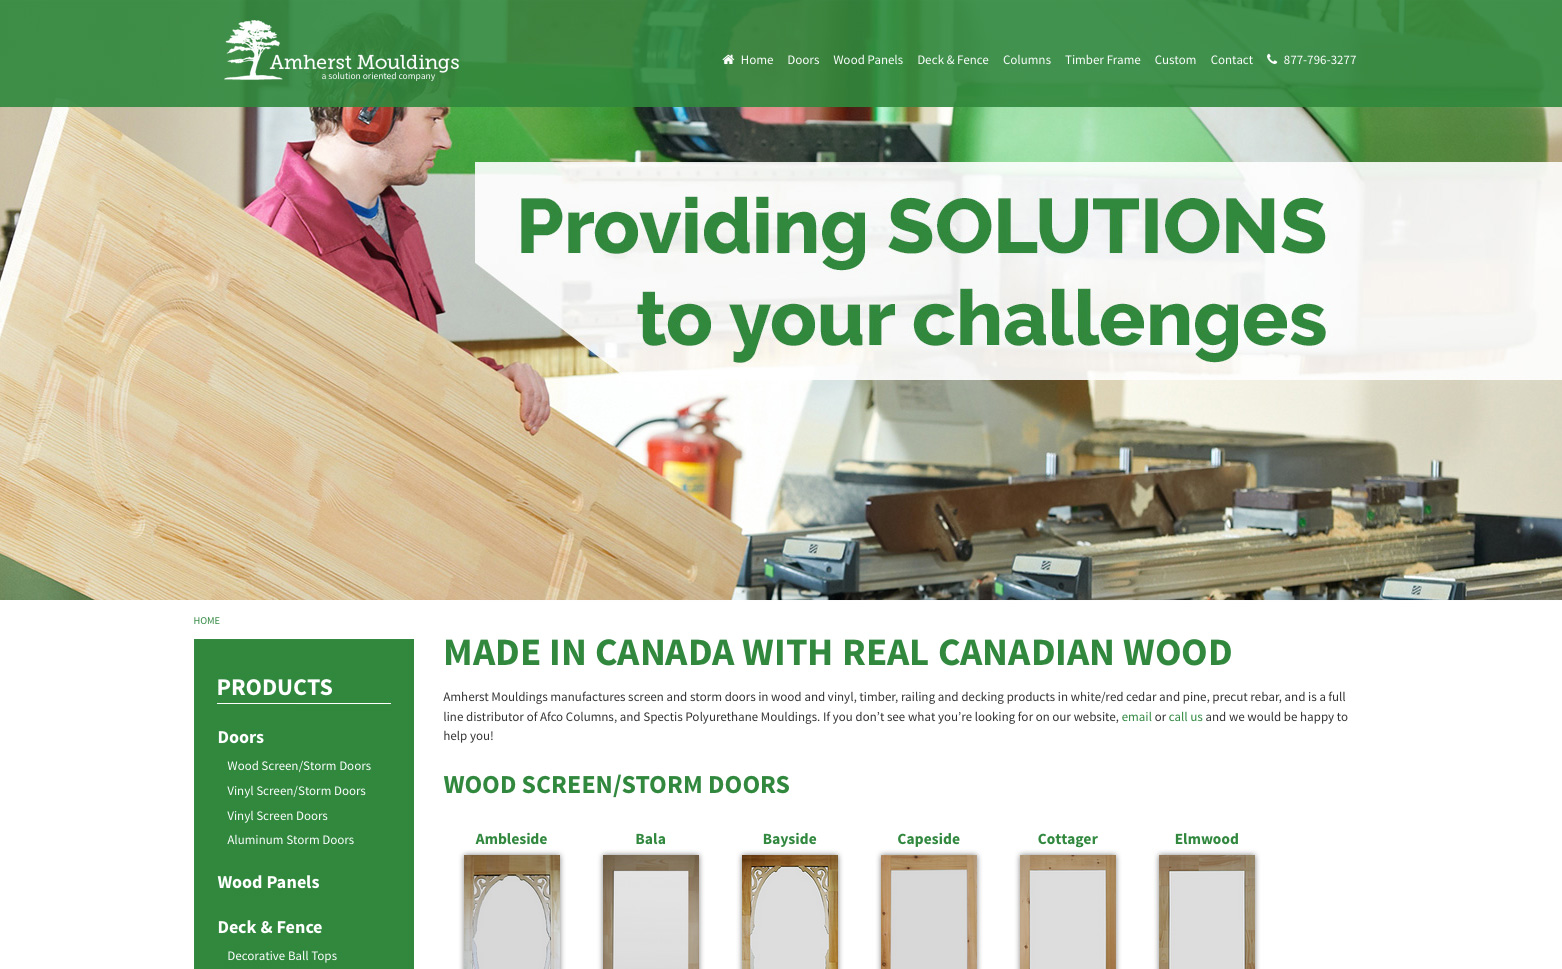 amherst-mouldings-wood-and-building-products